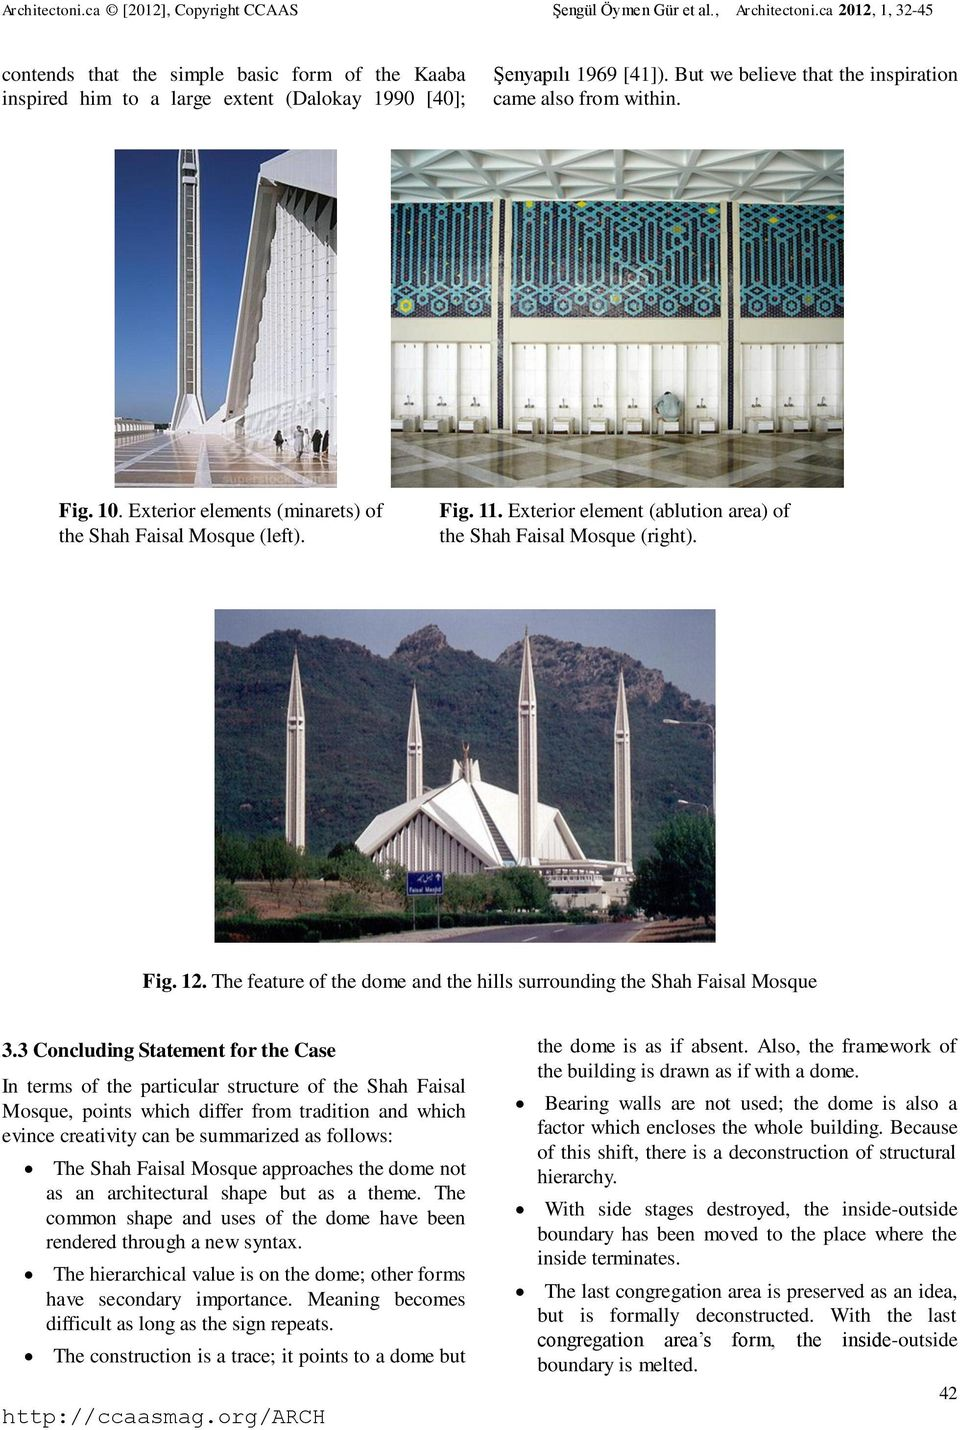 The feature of the dome and the hills surrounding the Shah Faisal Mosque 3.